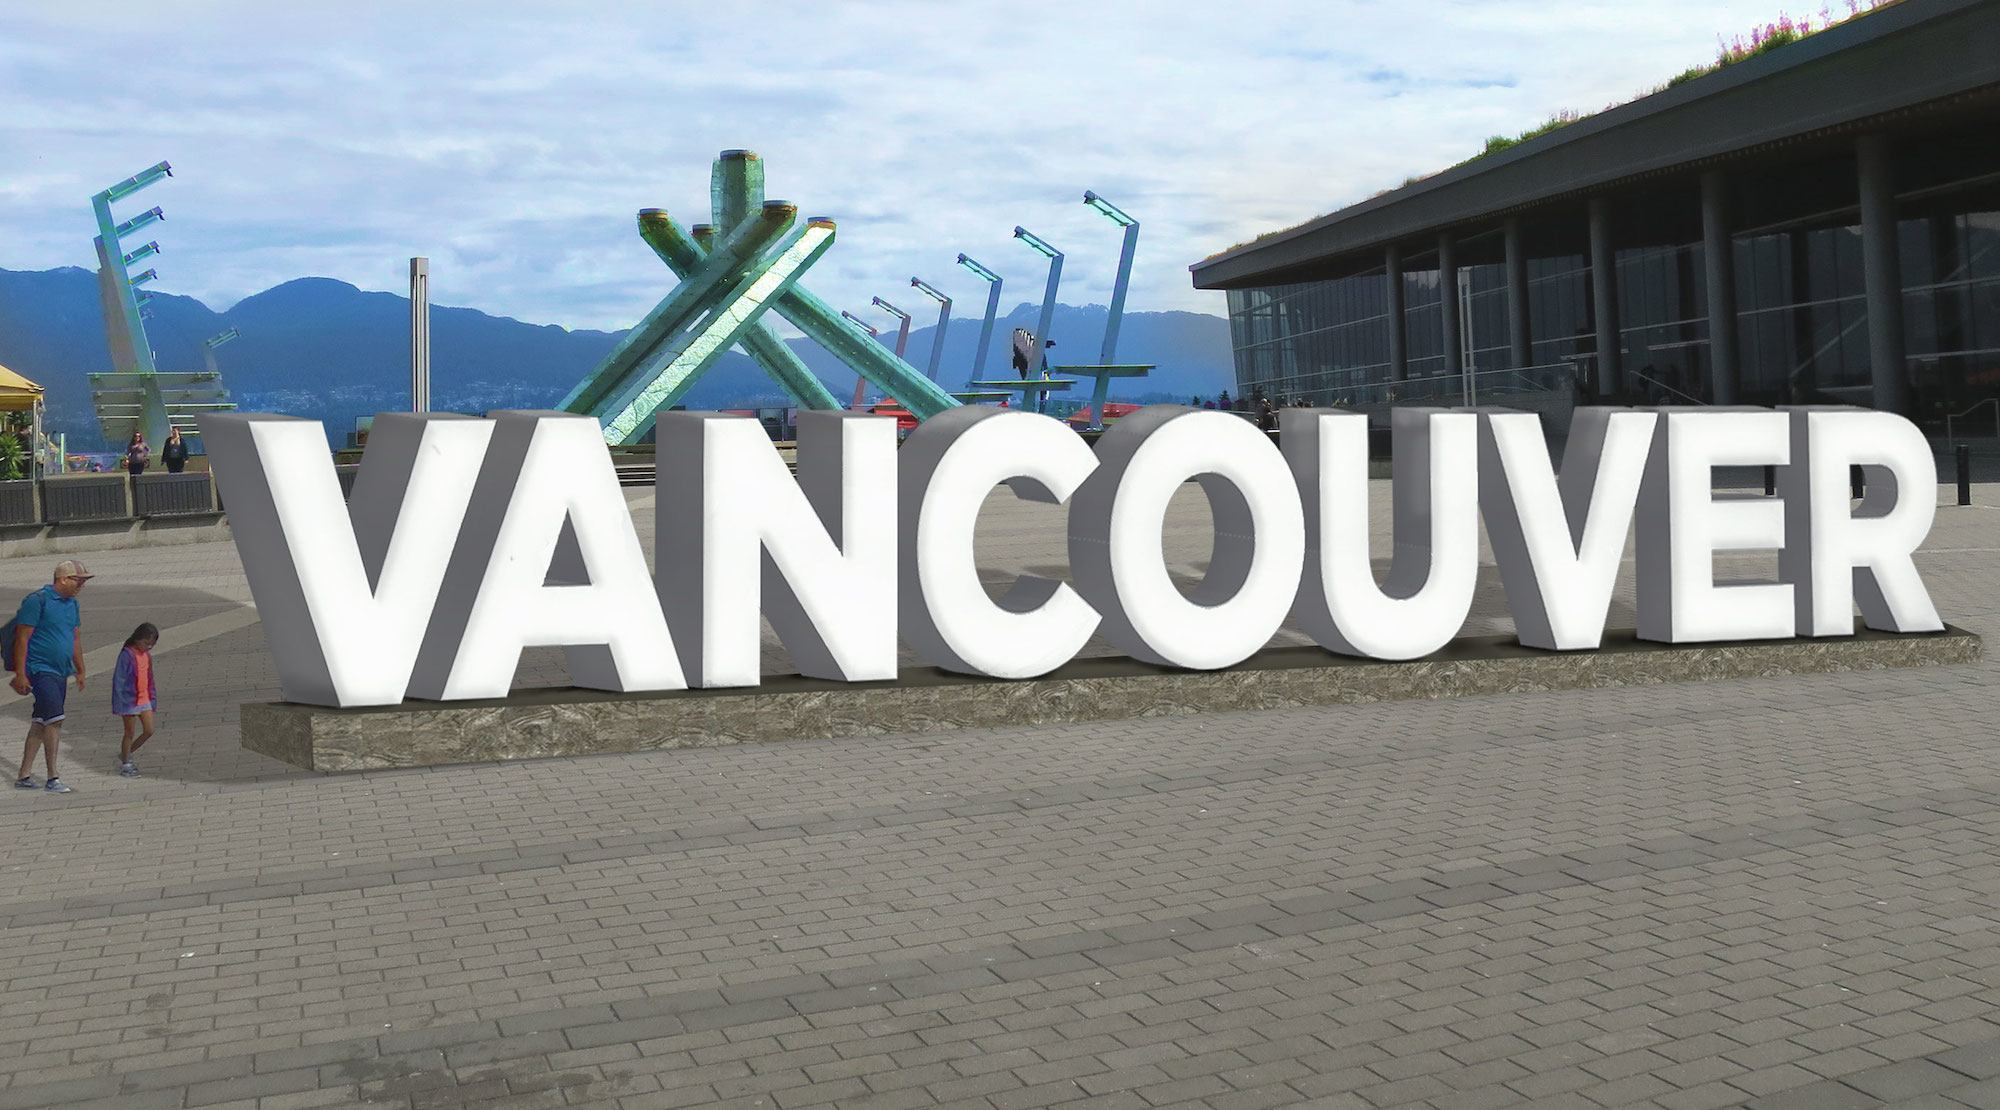 Opinion: For the sake of civic pride, it's time we get a 'VANCOUVER' sign